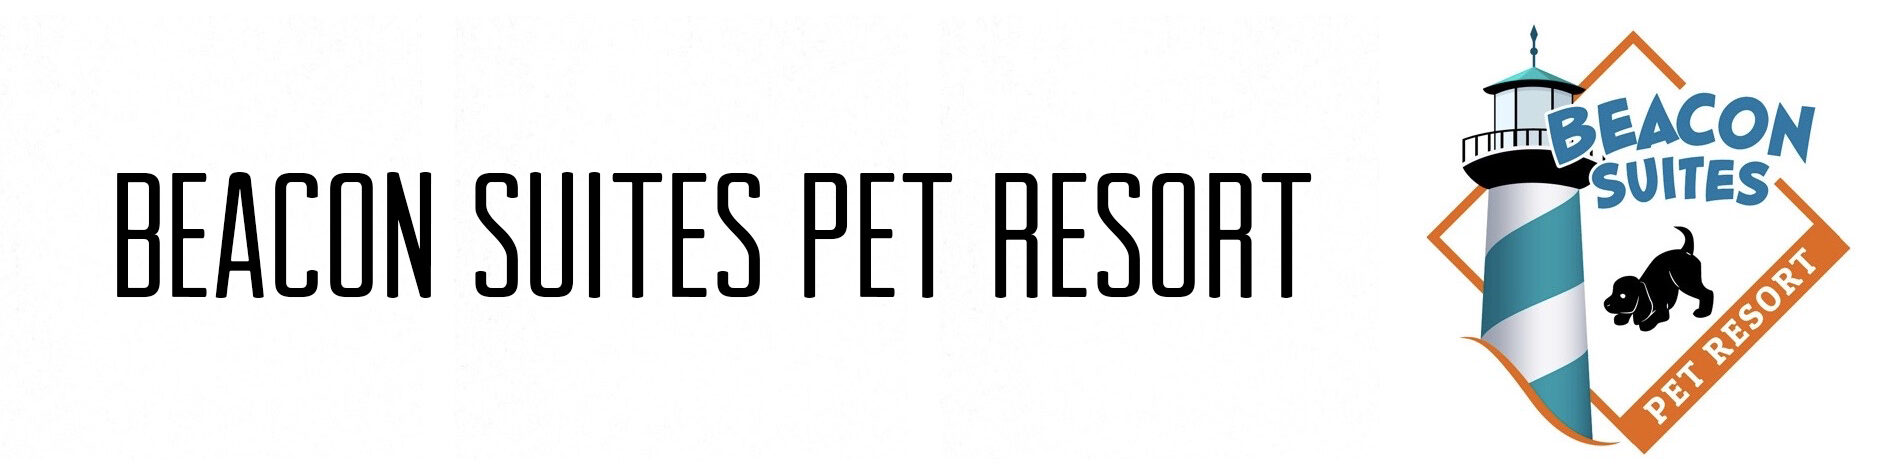 Beacon Suites Pet Resort